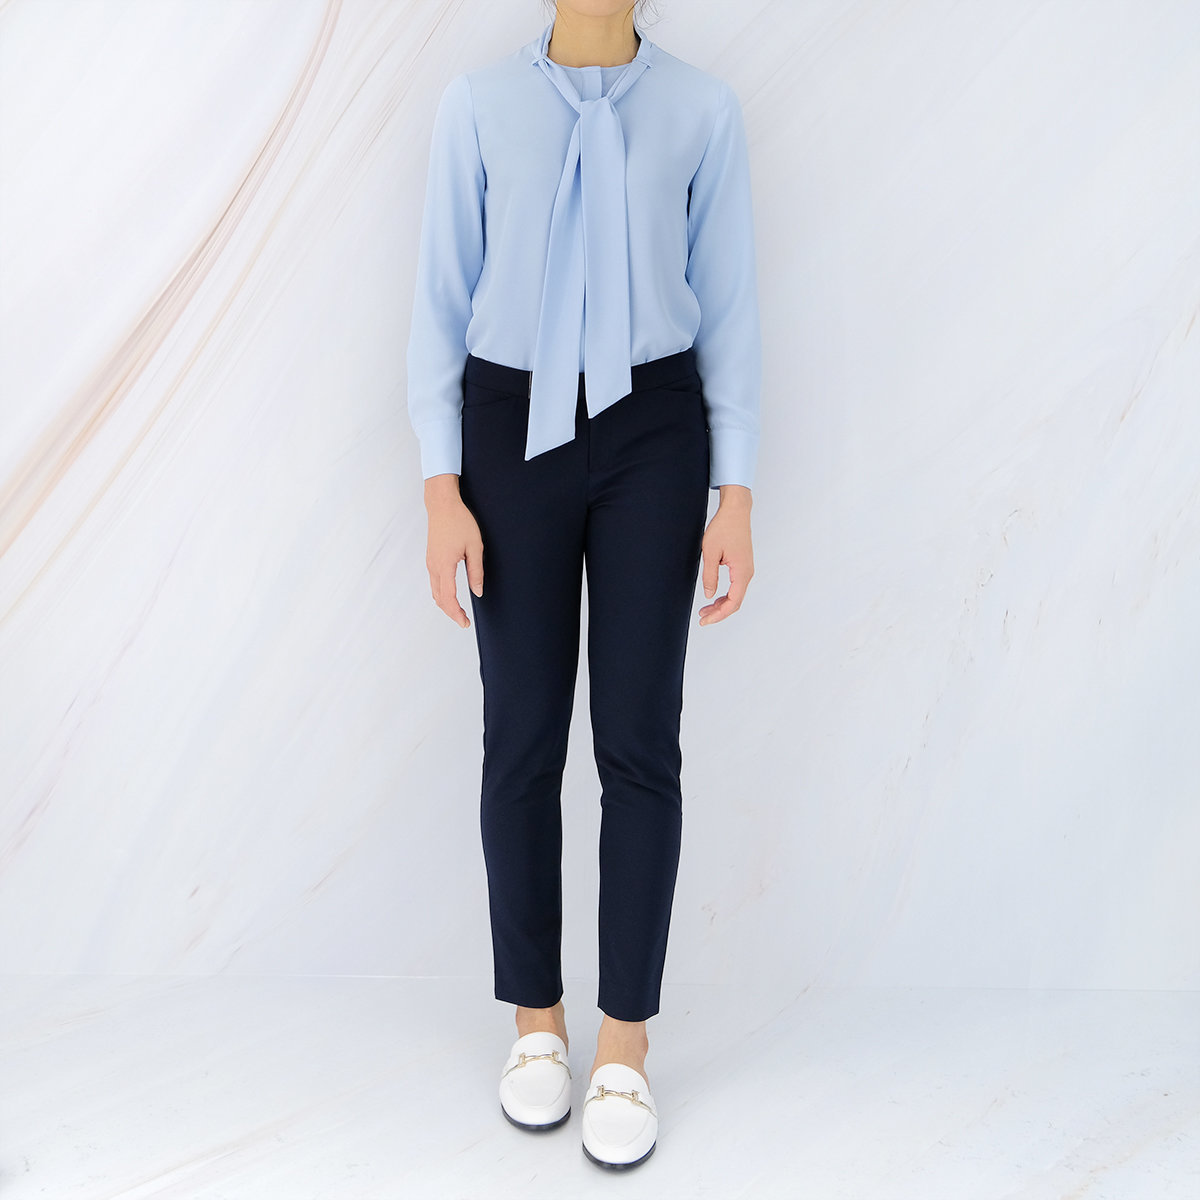 G2000 - Women's Stretch Ankle Skinny Pants